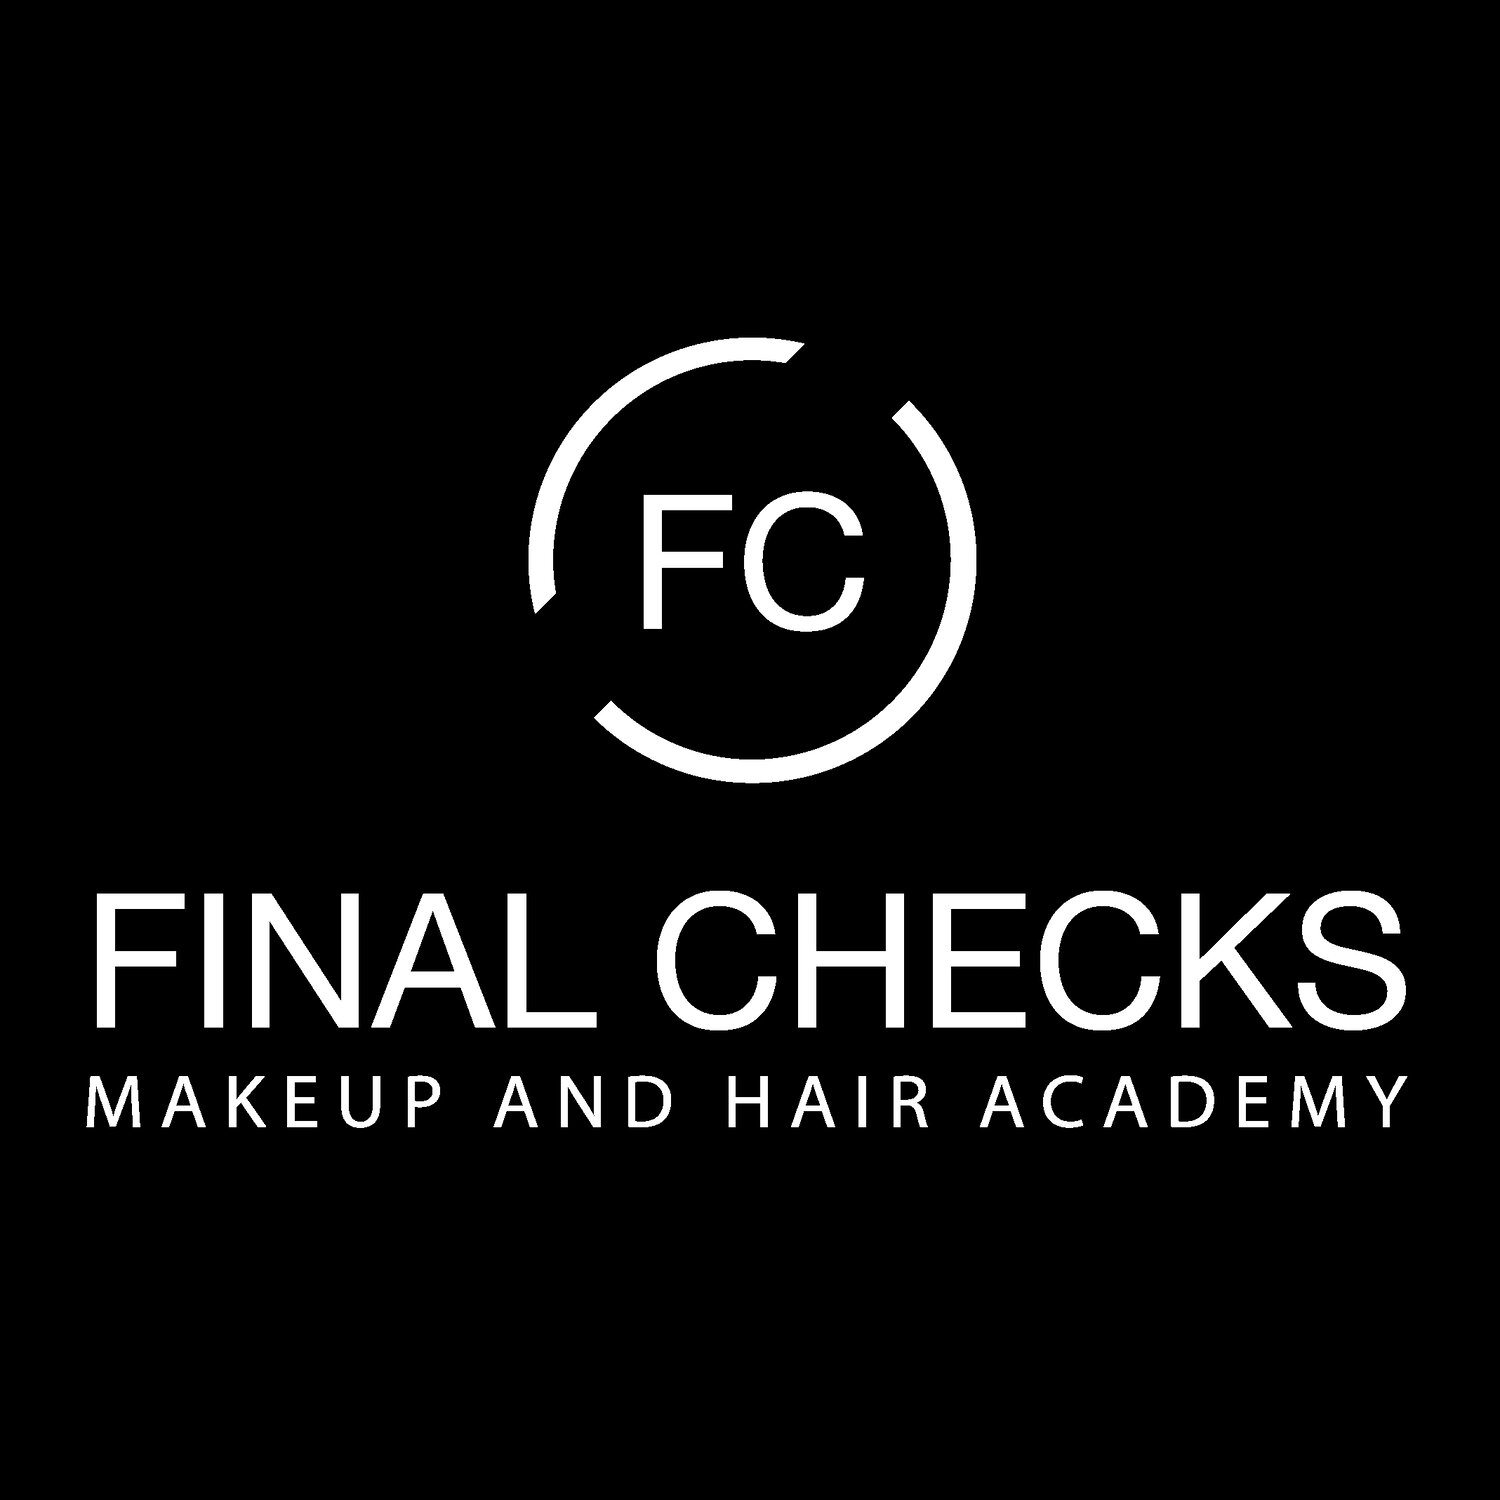 Final Checks Makeup and Hair Academy